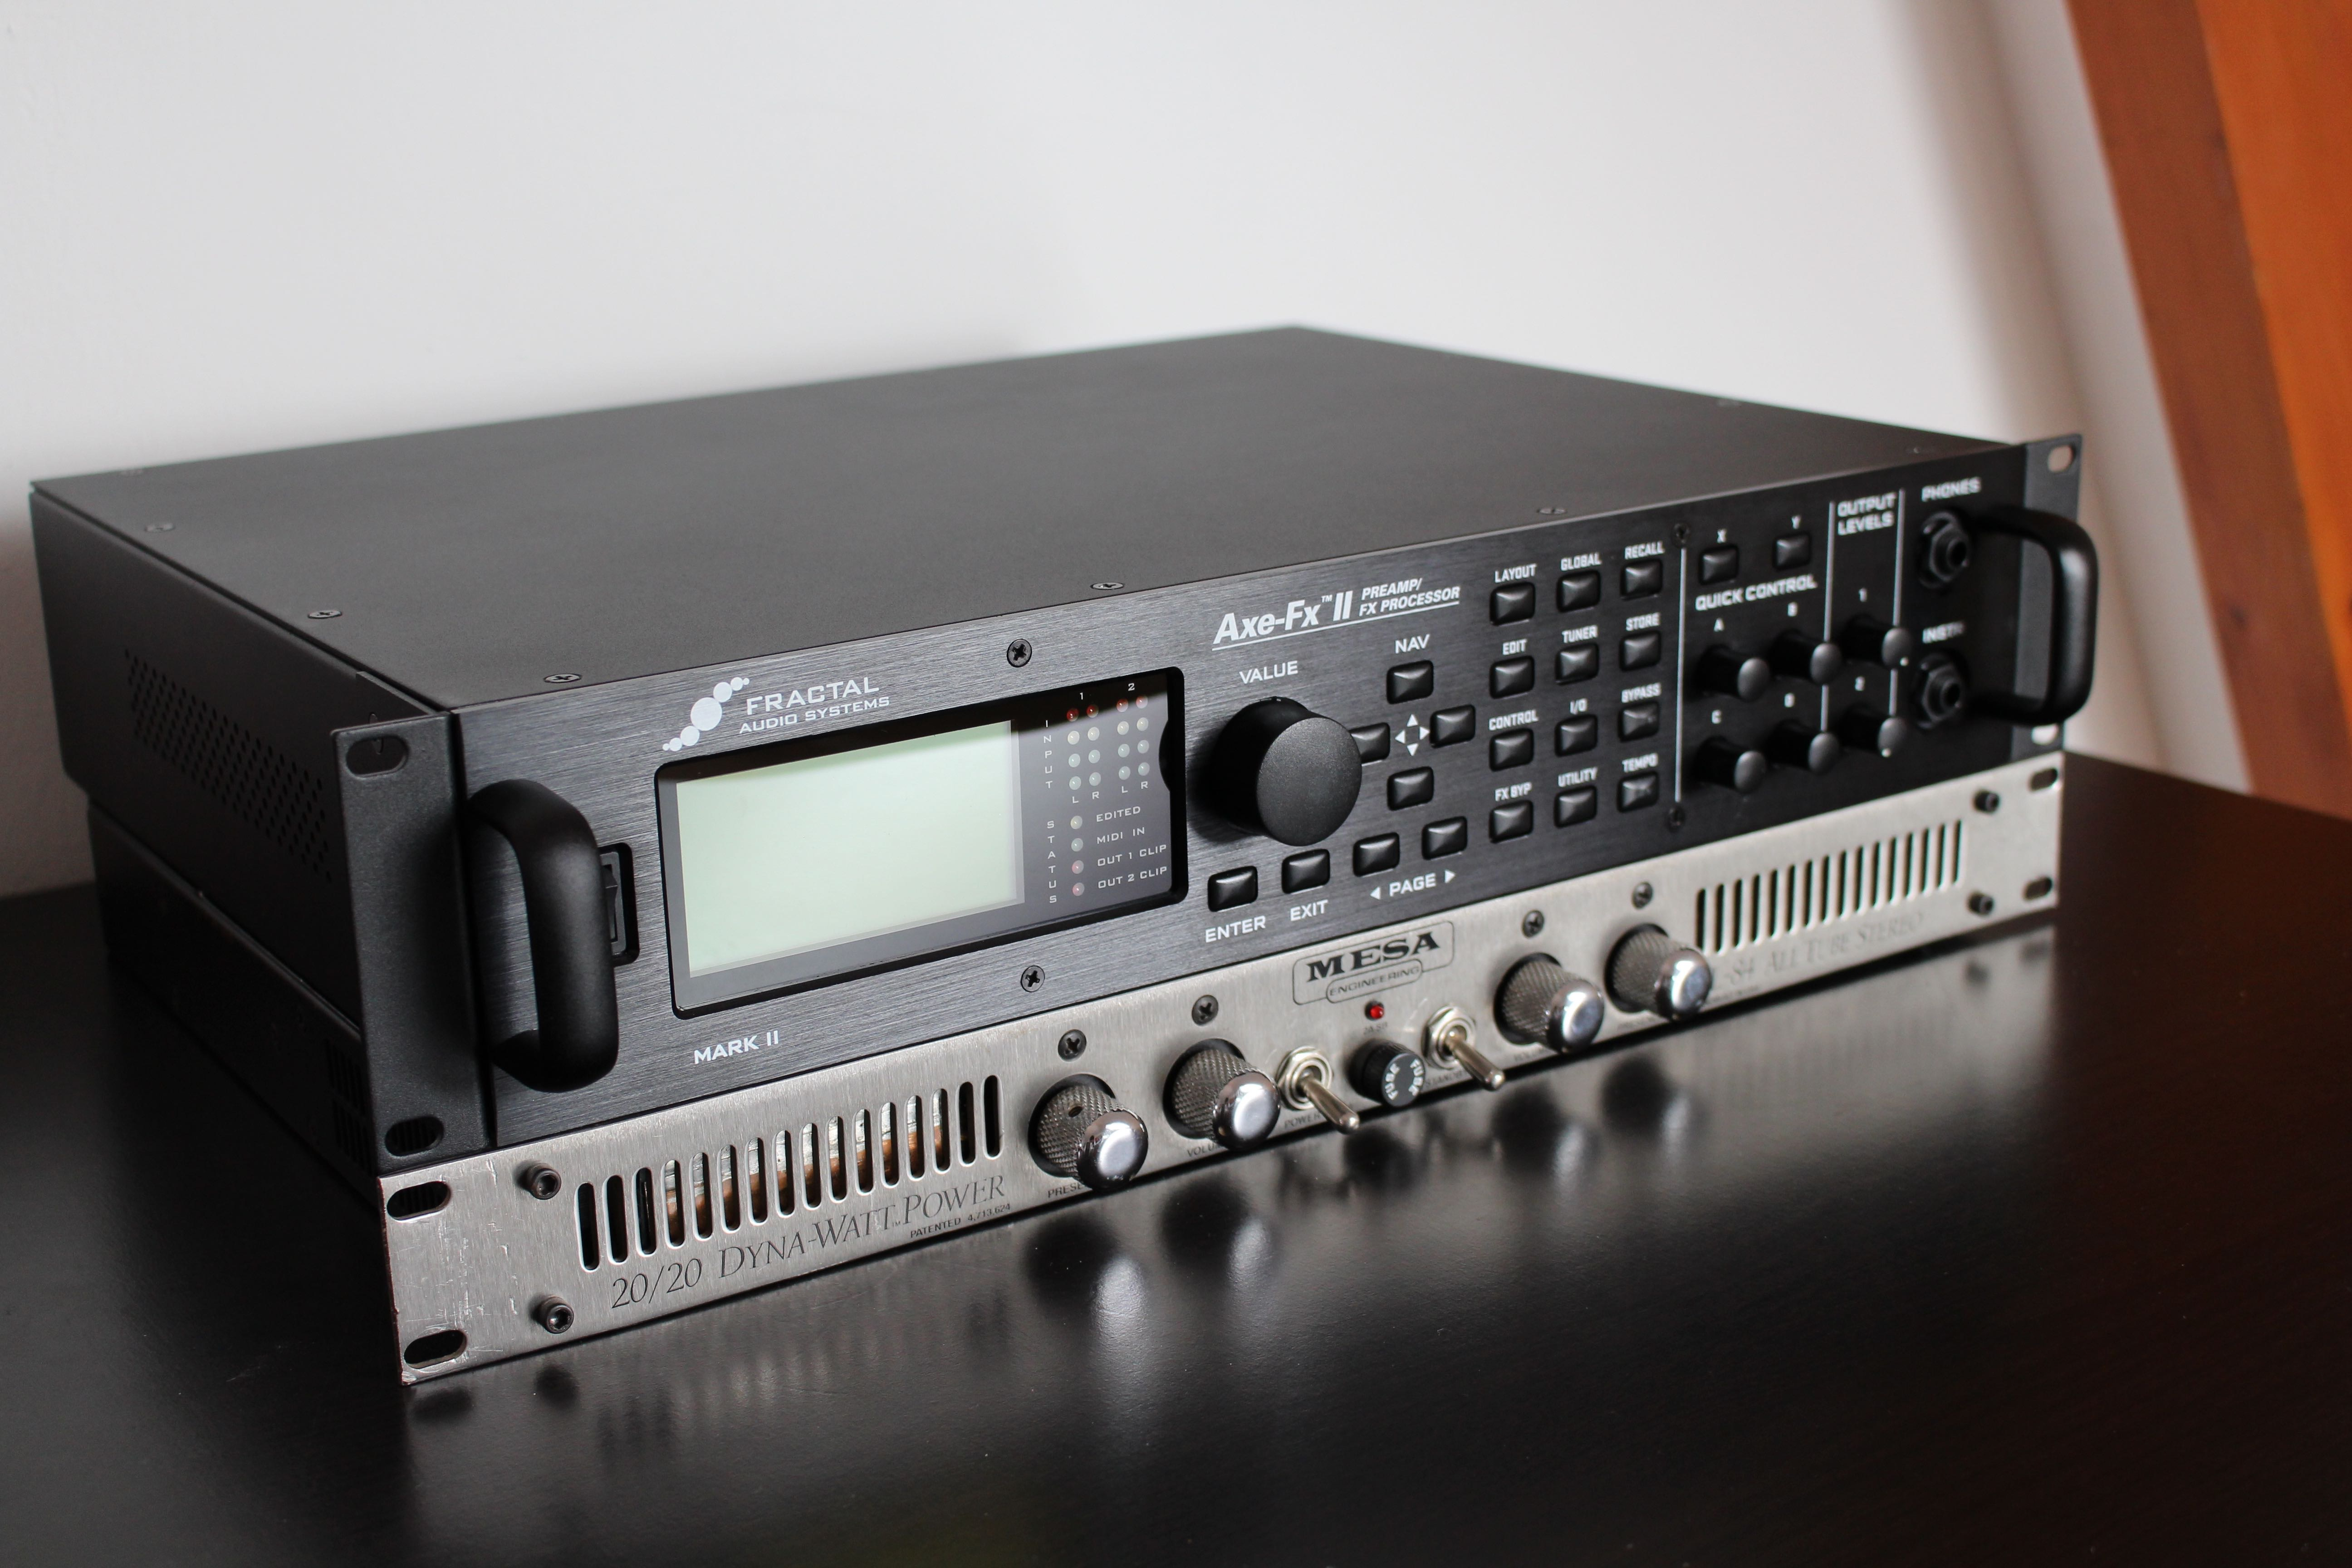 Fractal Audio Systems Axe-Fx II image (#1160337